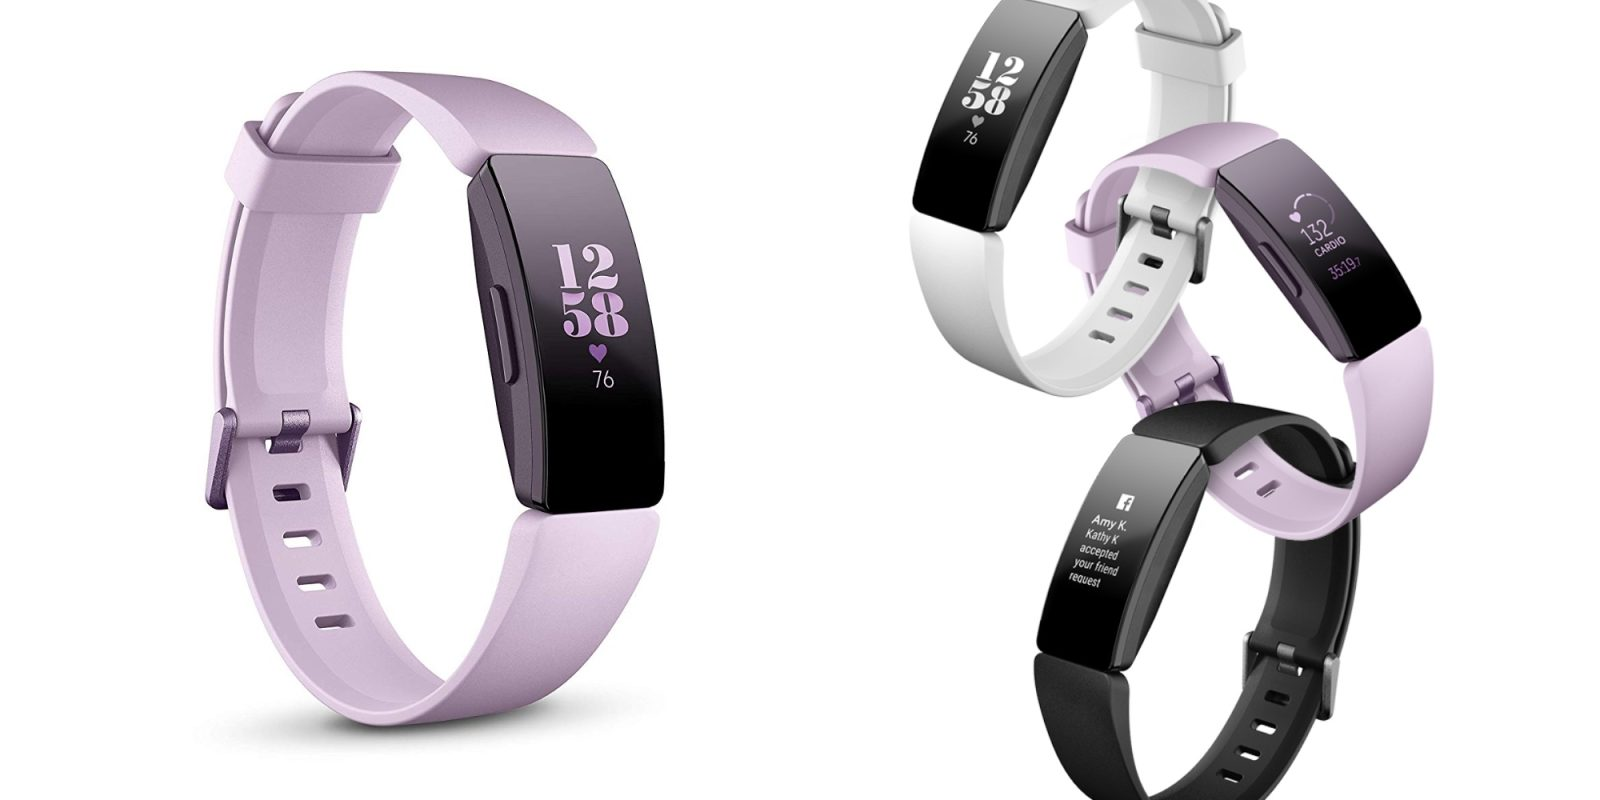 Fitbit Inspire HR is an affordable way to track sleep, heart rate, more at $80